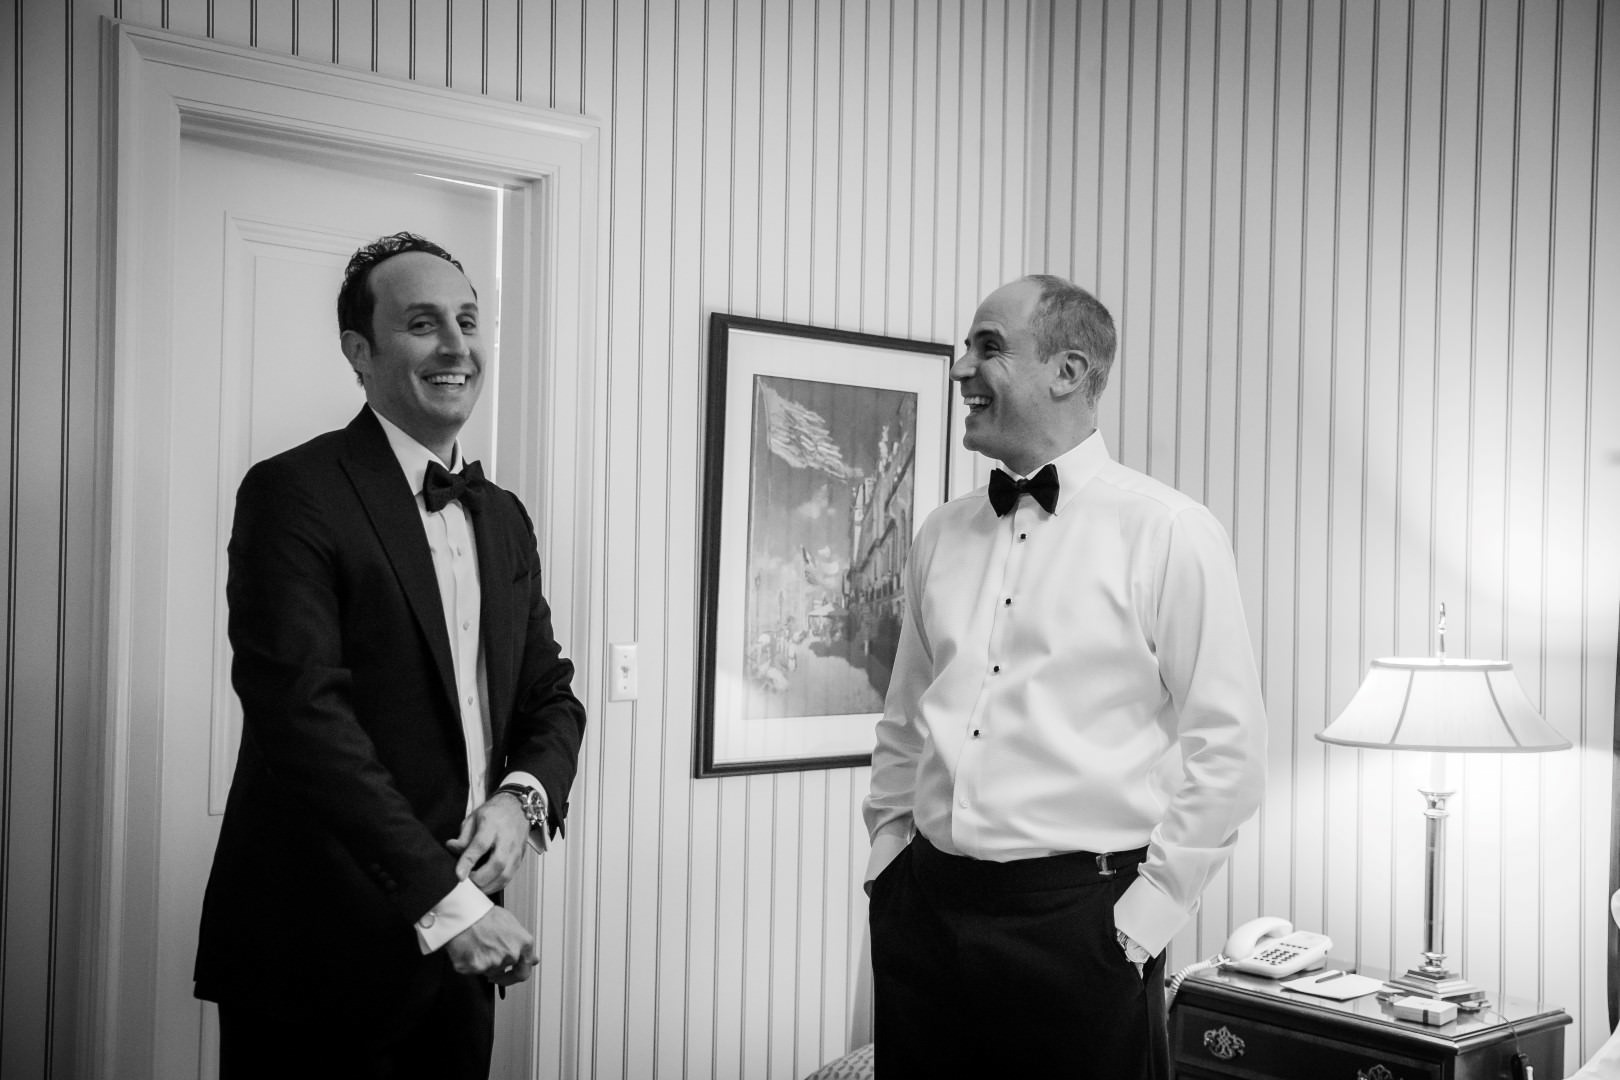 new york city wedding photography photographer photo groom getting ready best man bow tie artistic art